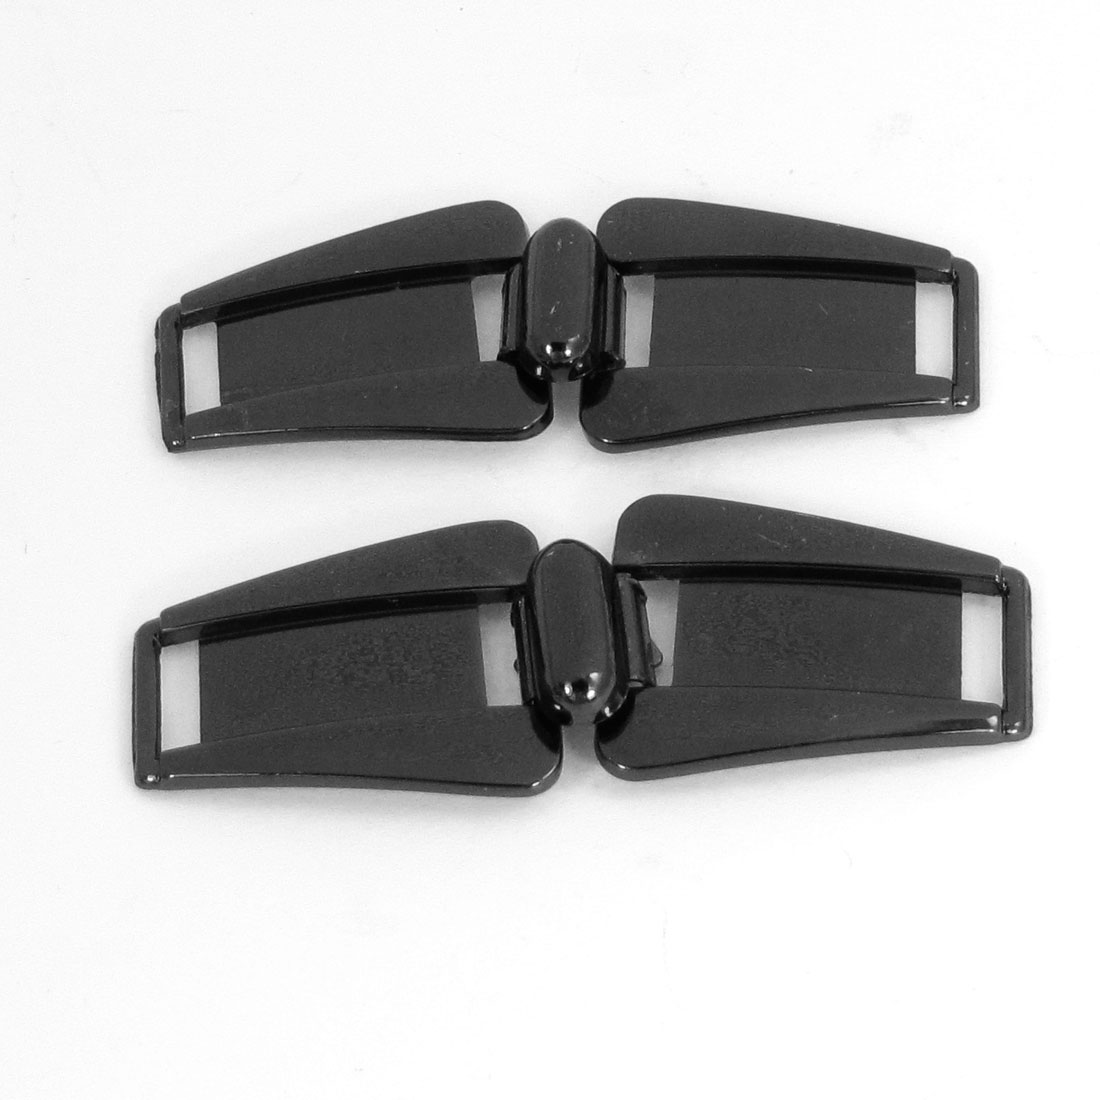 Handbag Shoes Accessories Decor Double Metal Dark Gray Buckle Ends 2Pcs